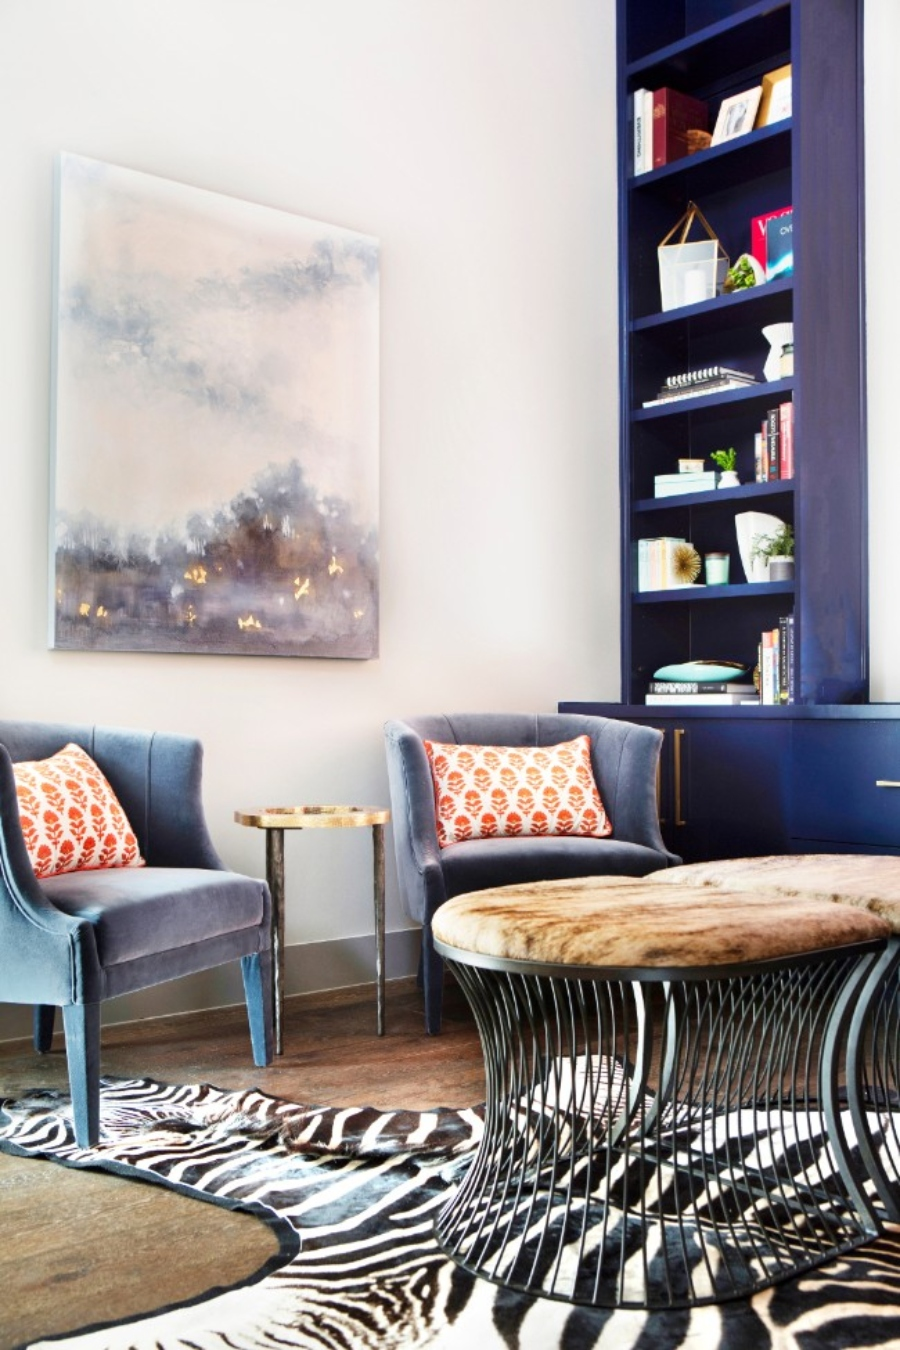 Marvellous Interior Design Projects in Austin marvellous interior design projects in austin Marvellous Interior Design Projects in Austin Barton Creeks Residence Luxury Home Design Furnished By BRABBU 2